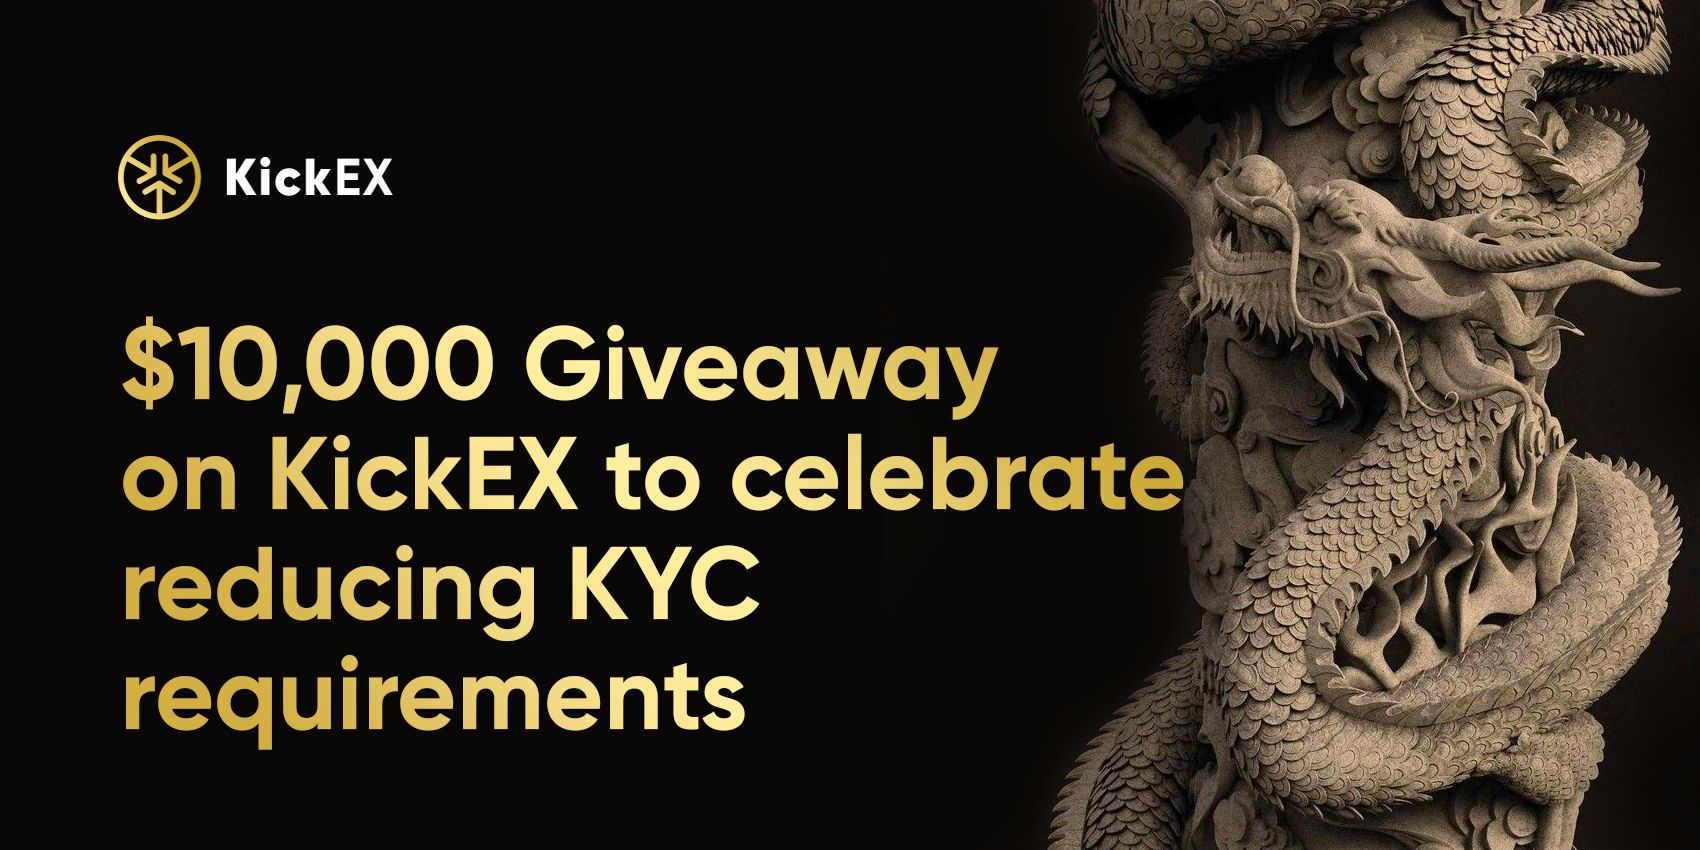 /kickex-launches-a-contest-and-gives-away-dollar10000-to-celebrate-the-reduction-of-kyc-requirements-zwl3xb4 feature image